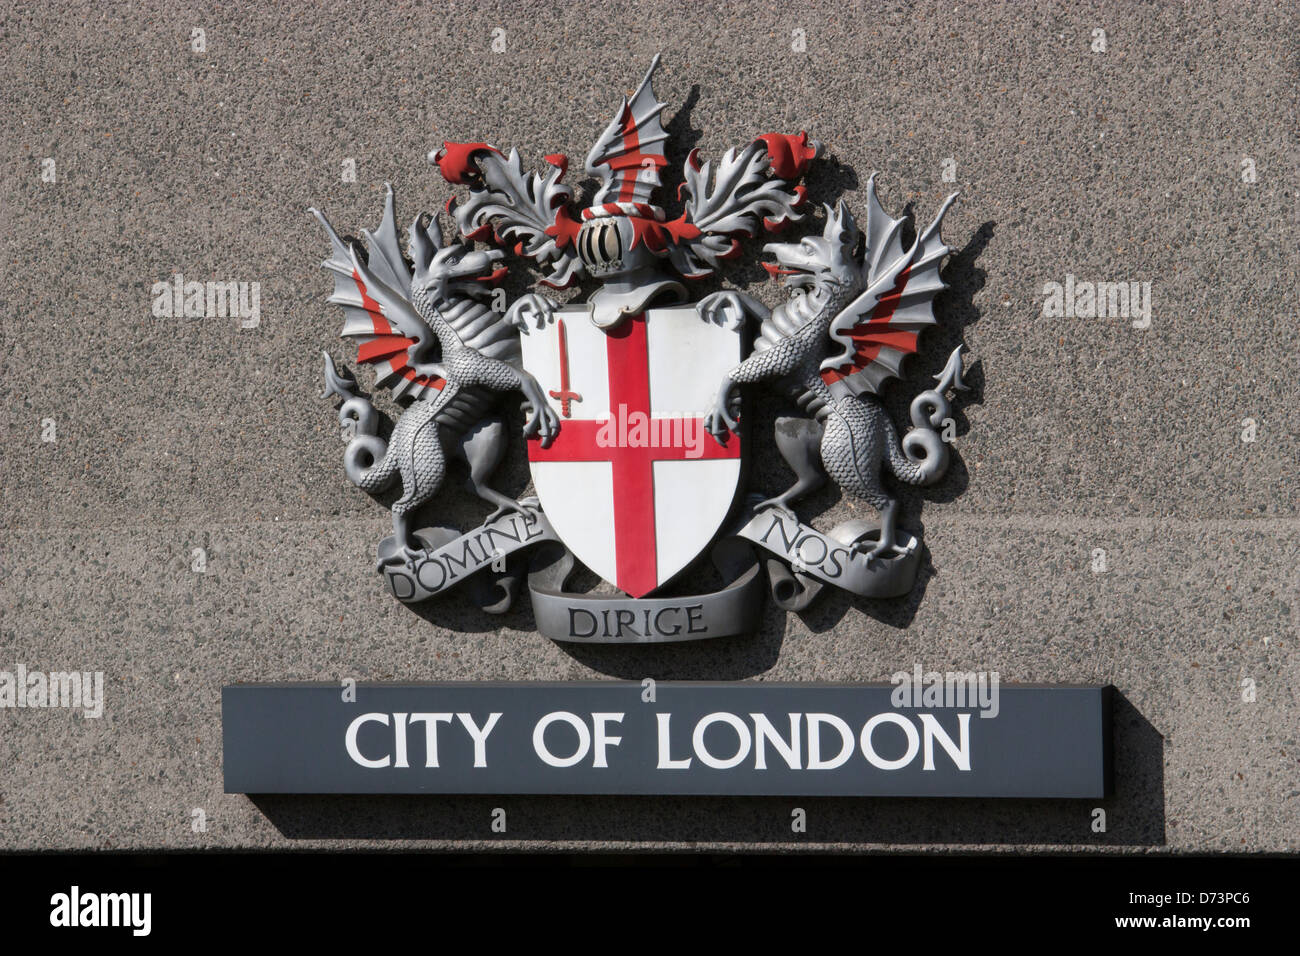 domine nos dirige city of london dragon crest - Stock Image